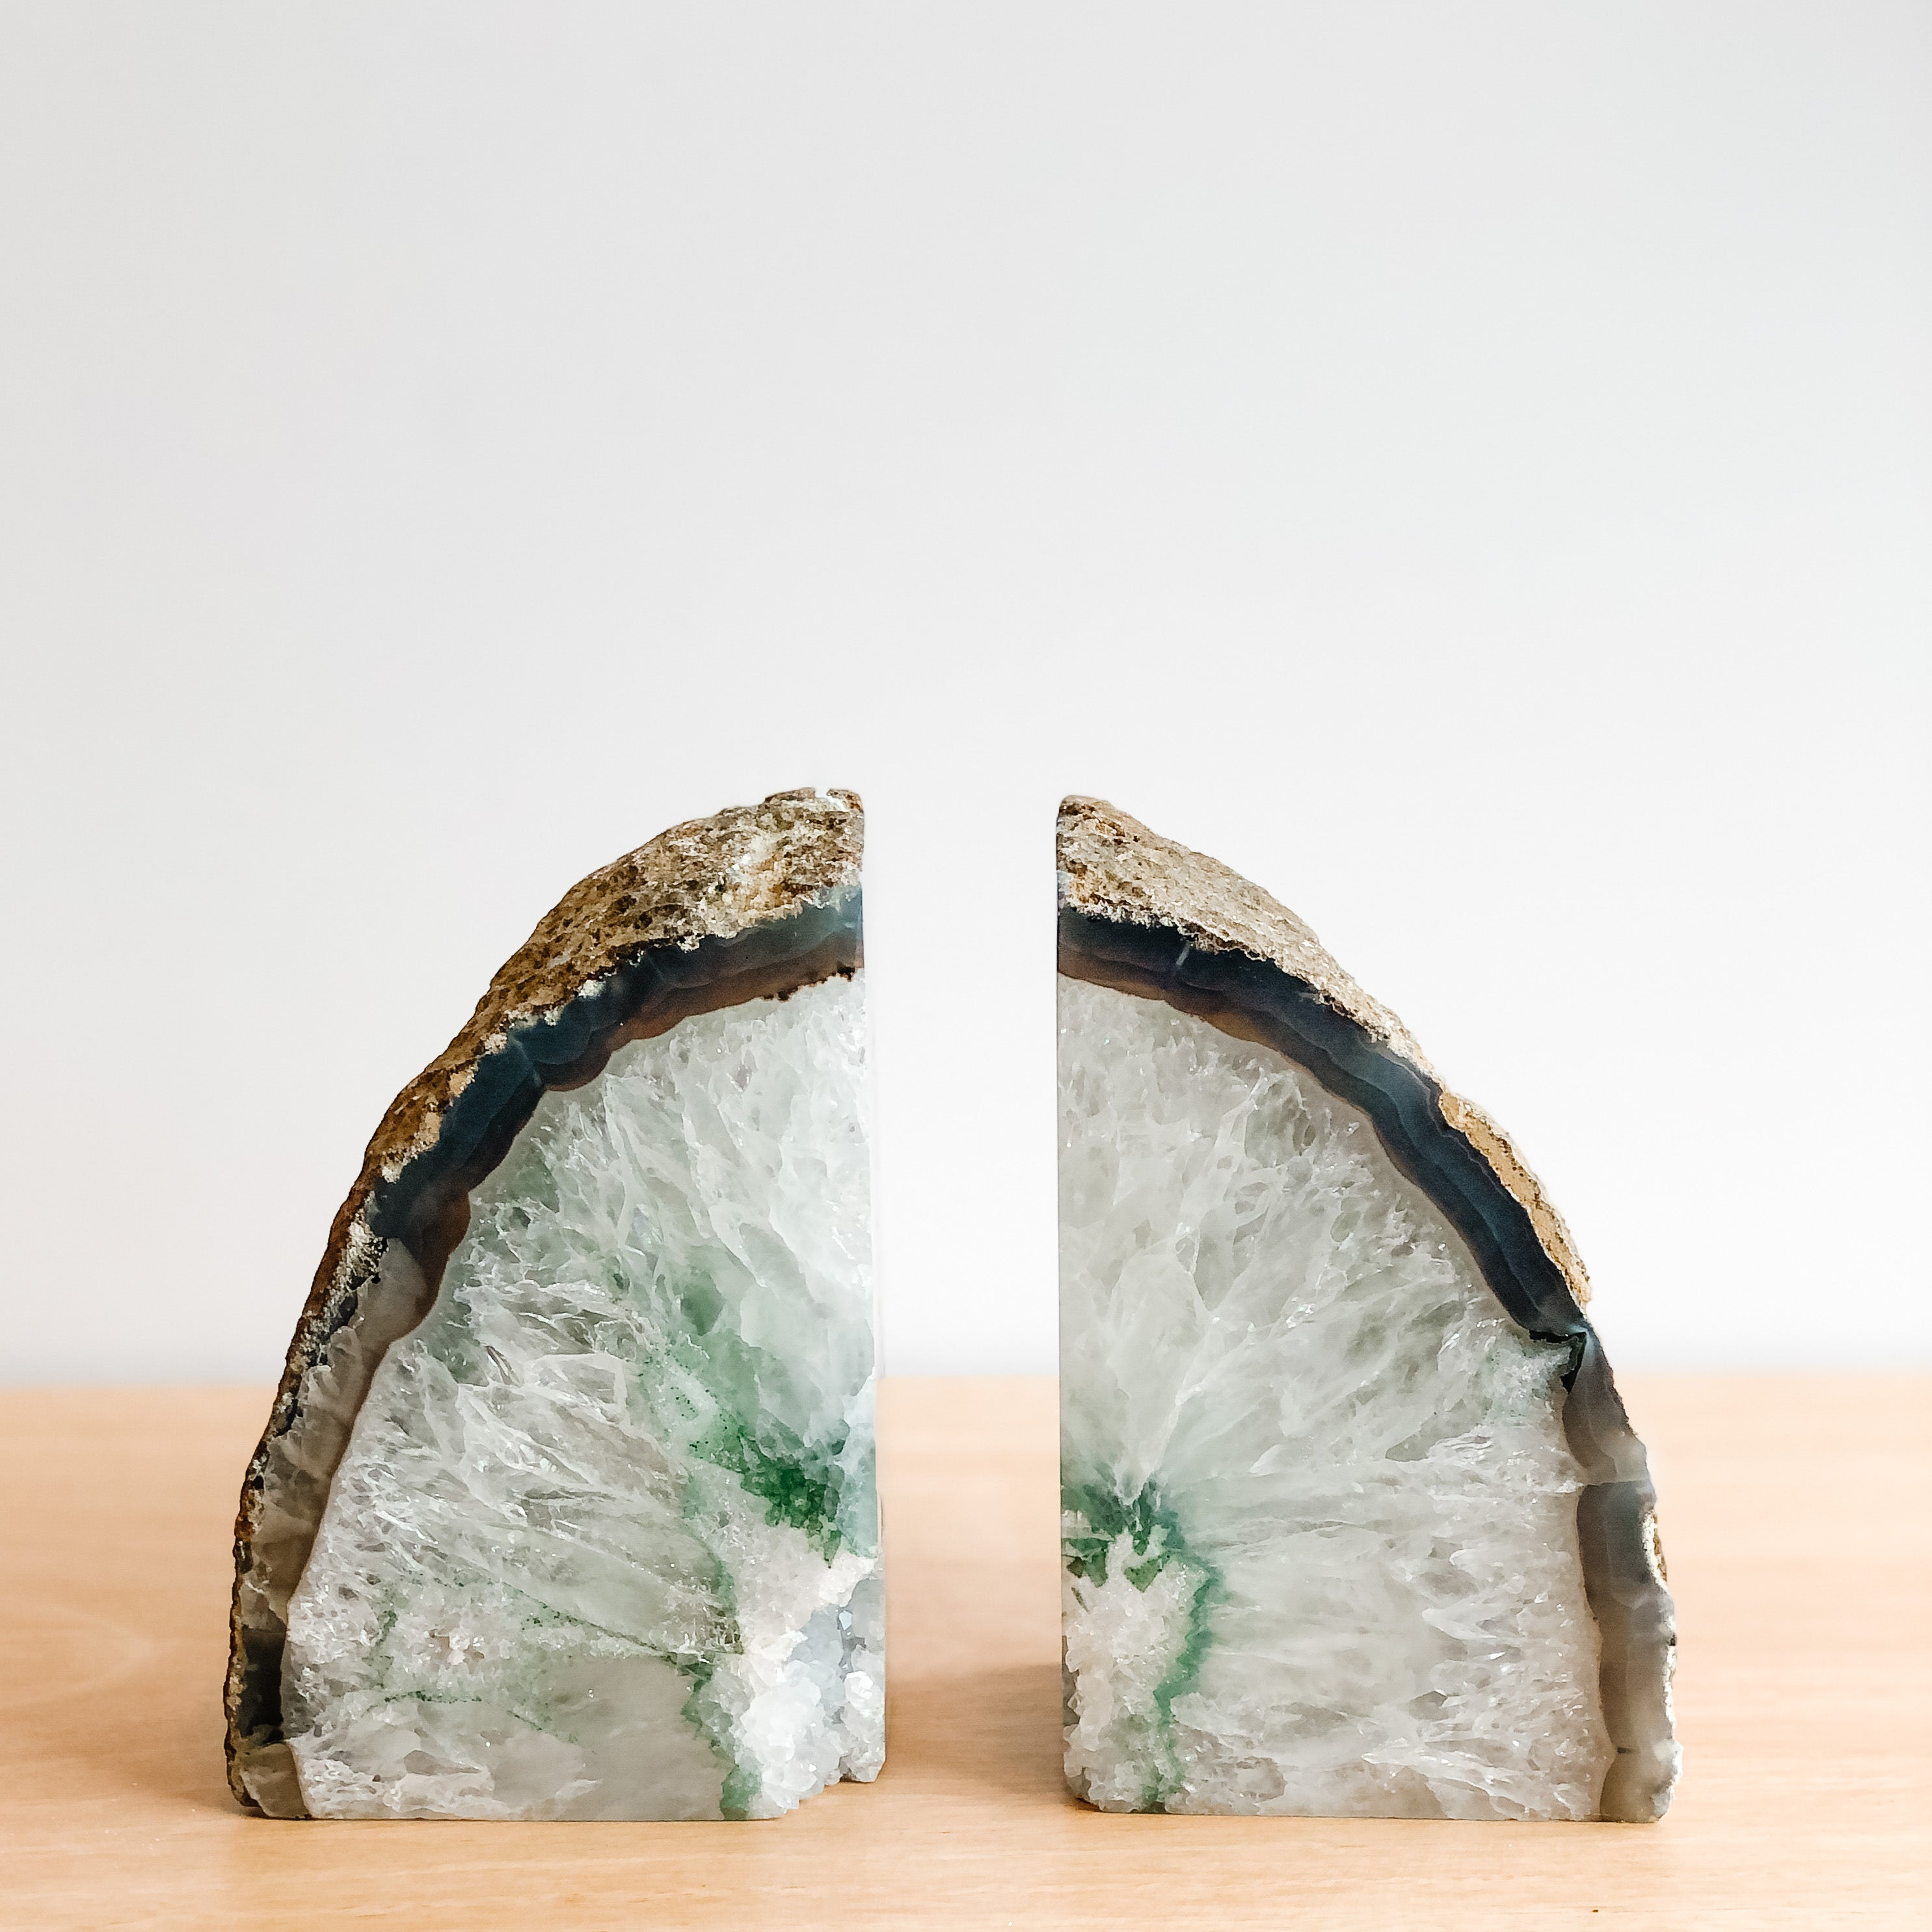 GREEN AGATE BOOKENDS